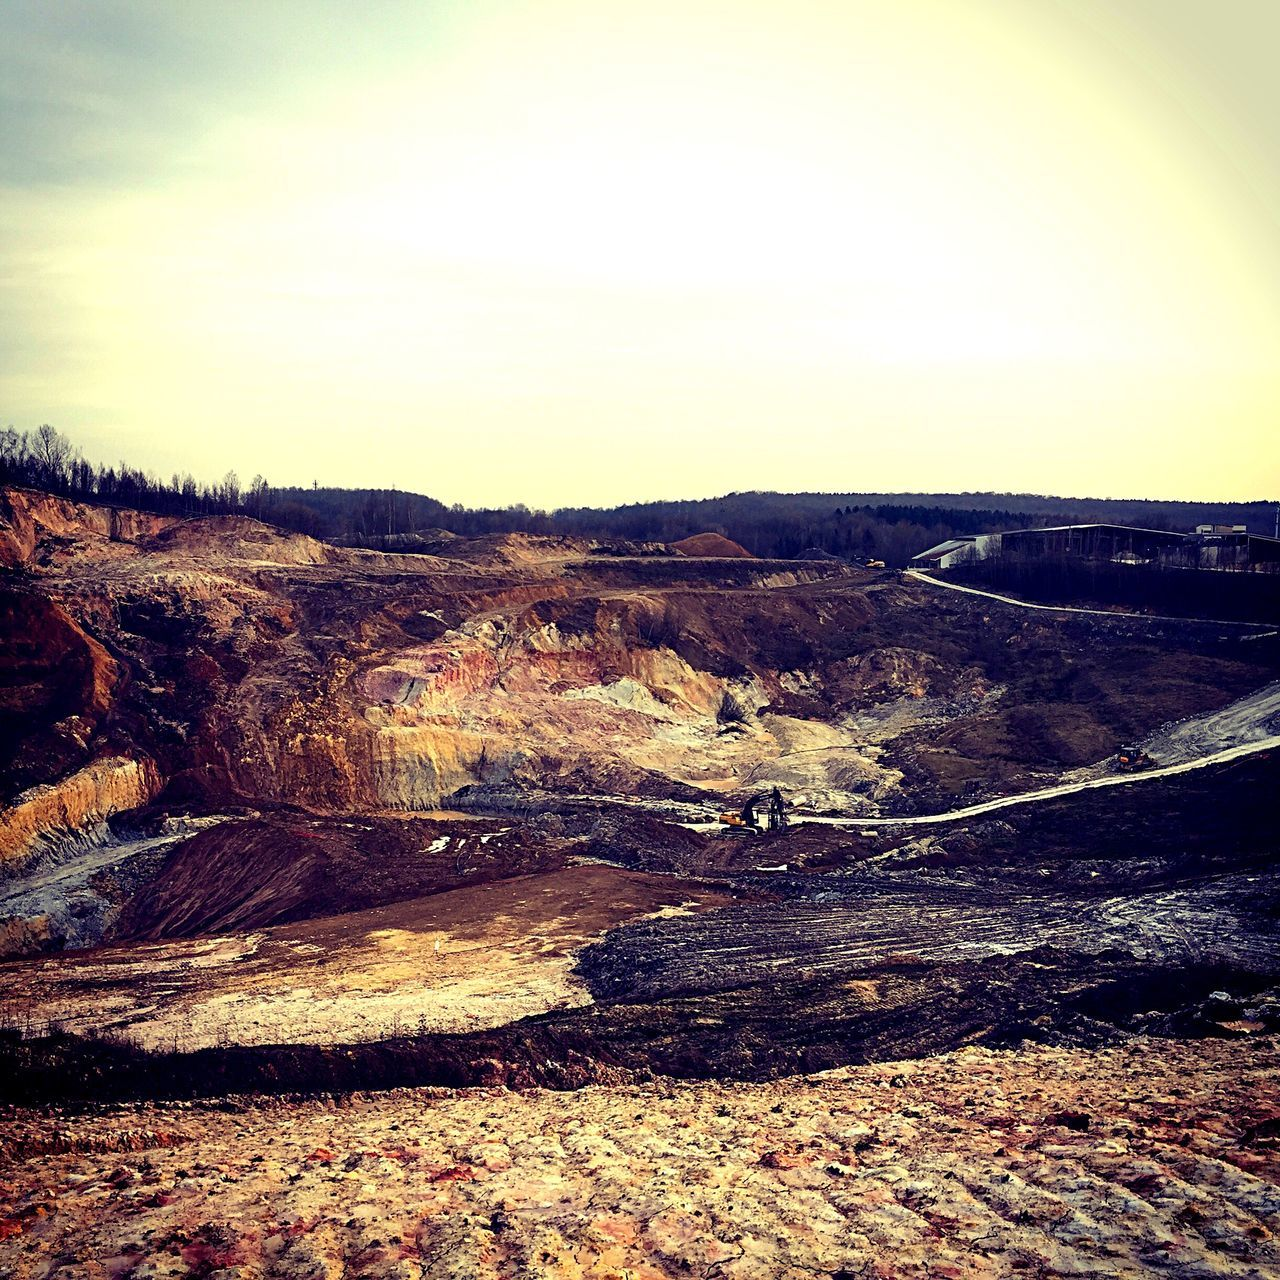 landscape, nature, outdoors, tranquil scene, beauty in nature, scenics, no people, tranquility, day, sky, coal mine